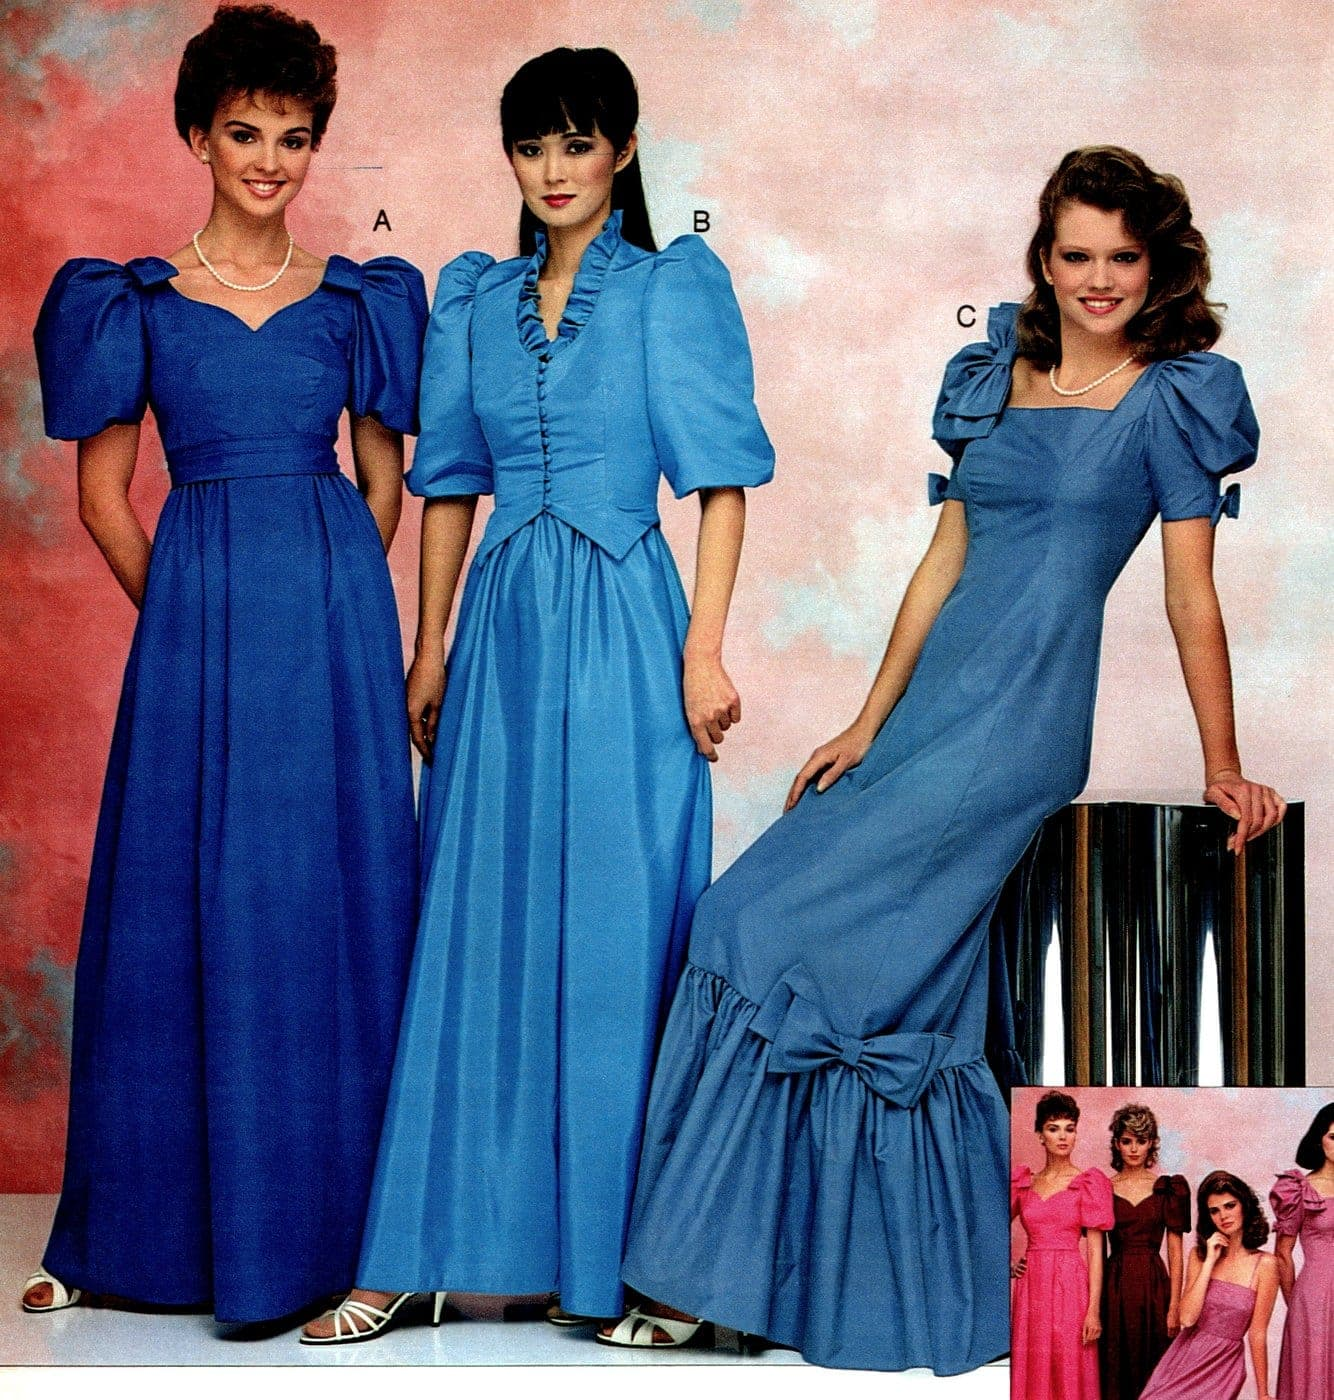 Prom dresses from 1983 (1)